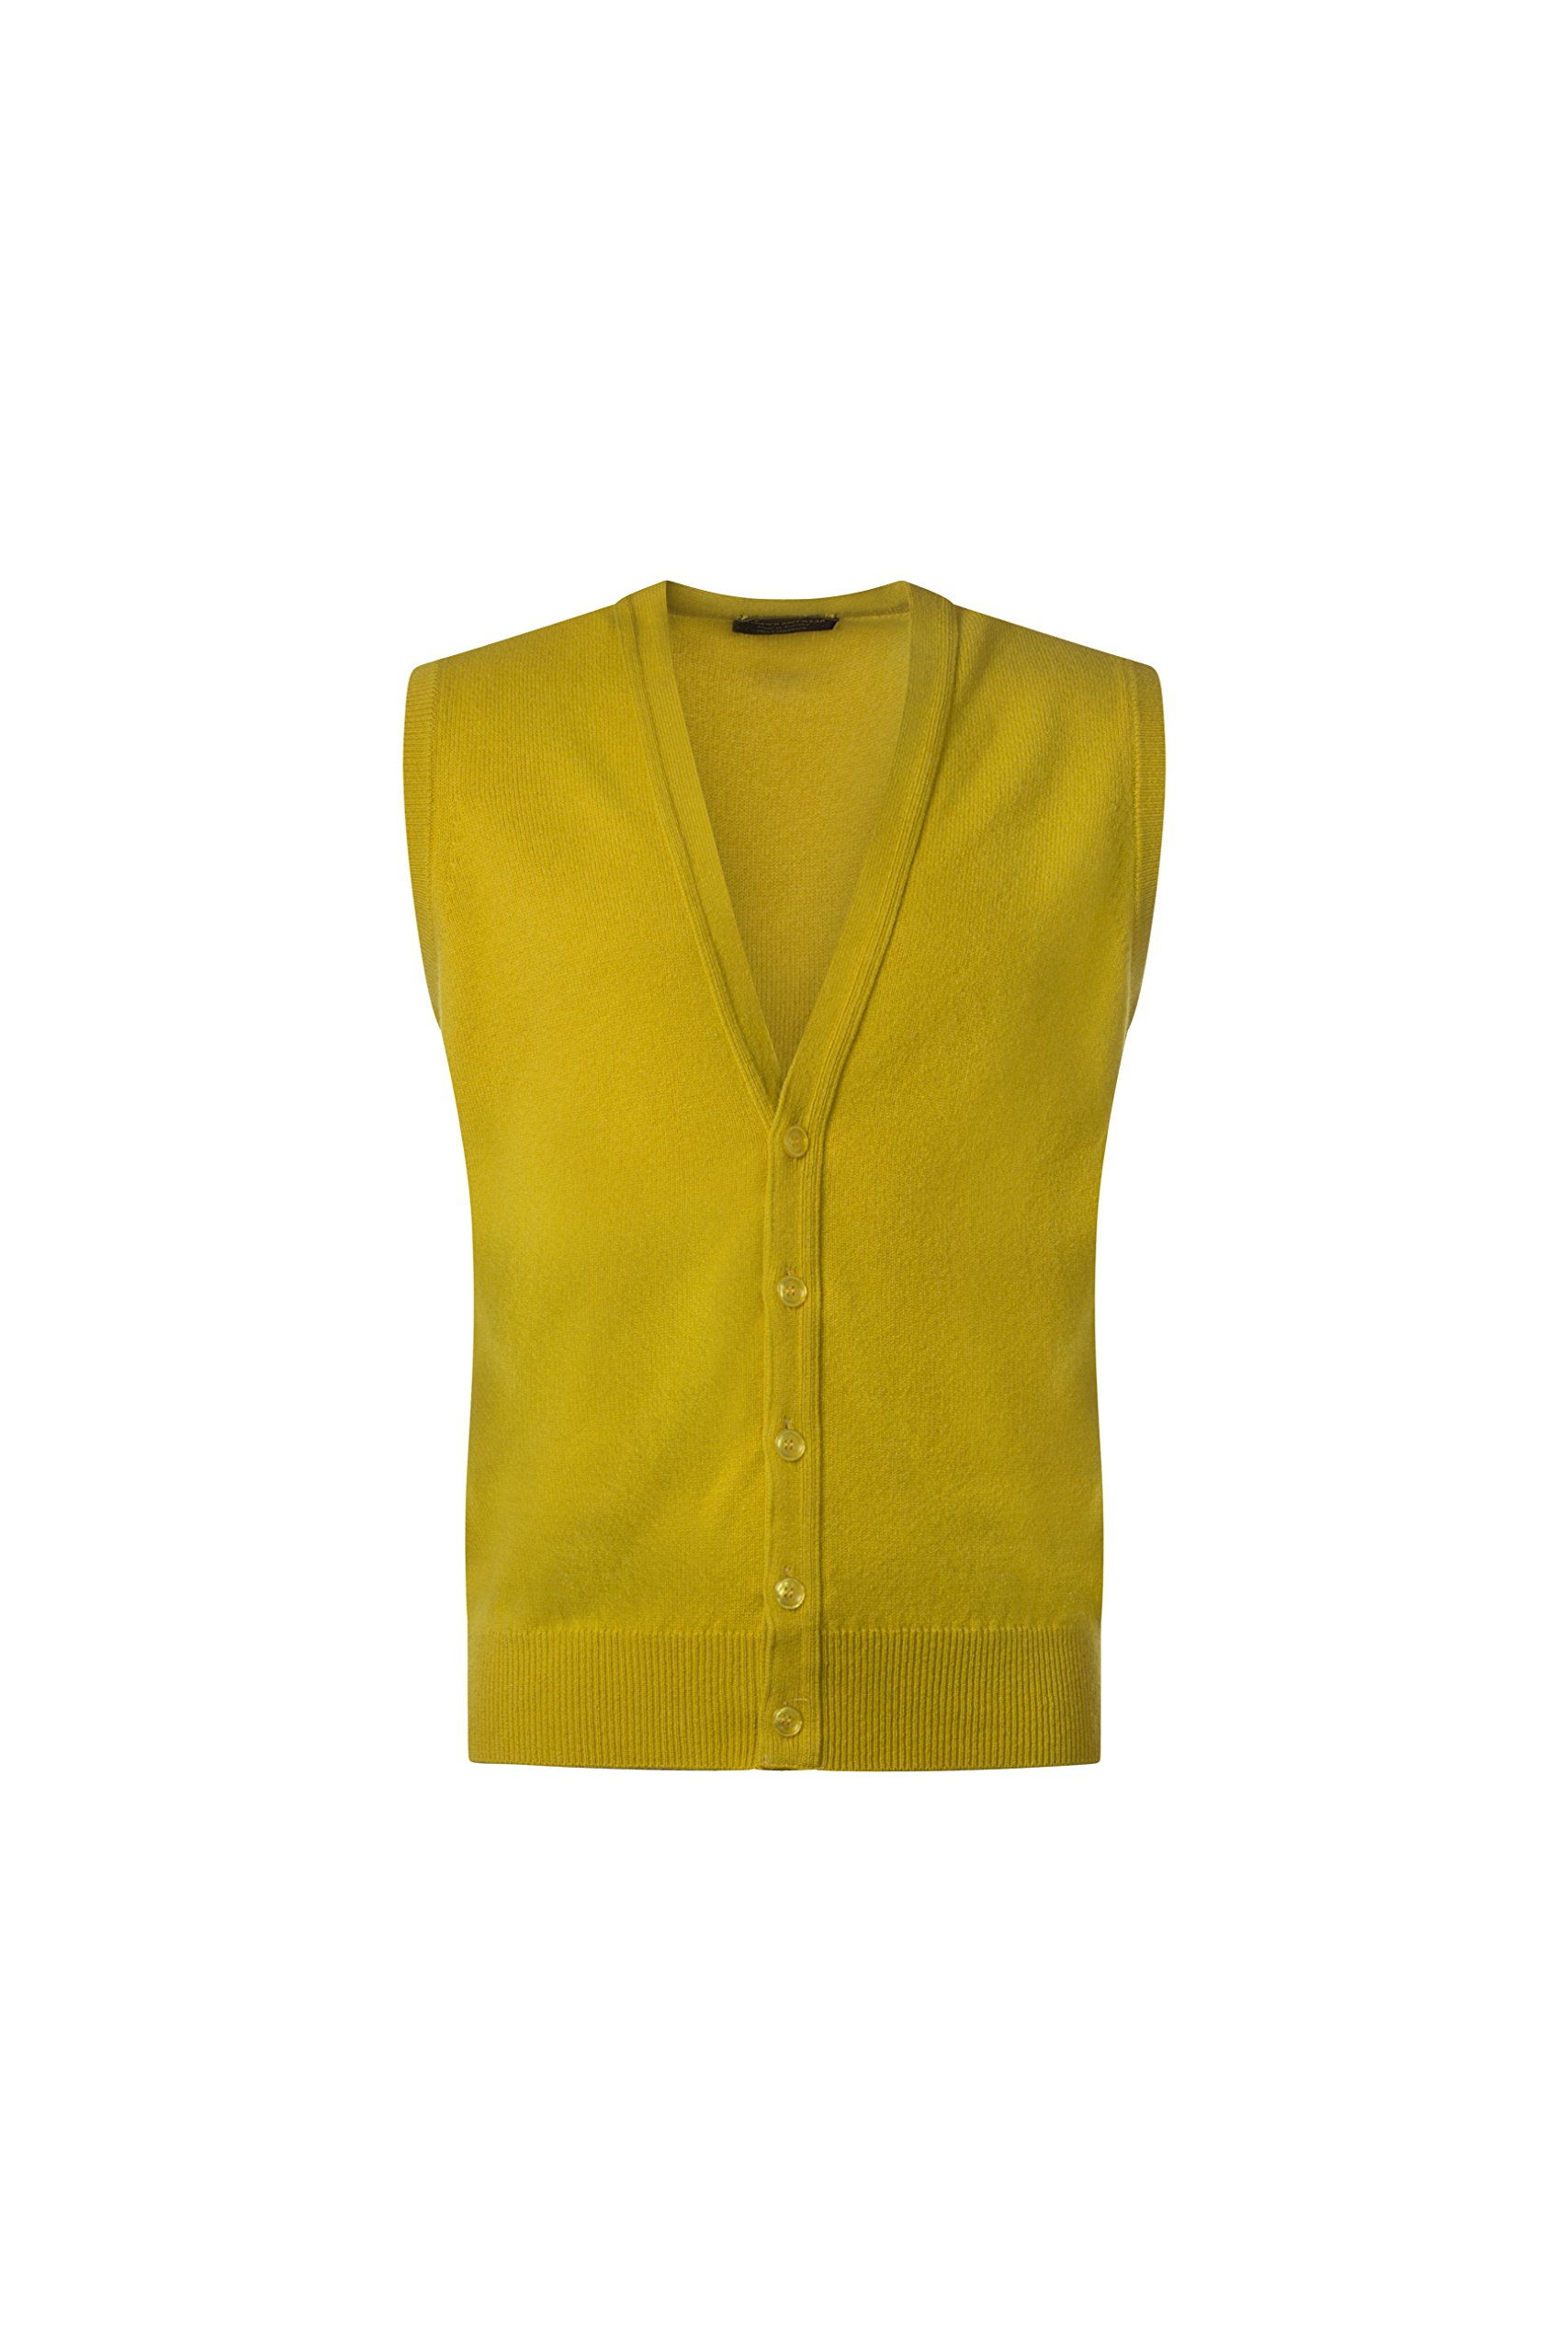 Great and British Knitwear Mens Made in Scotland 100% Lambswool V Neck Waistcoat-Piccalilli-Large